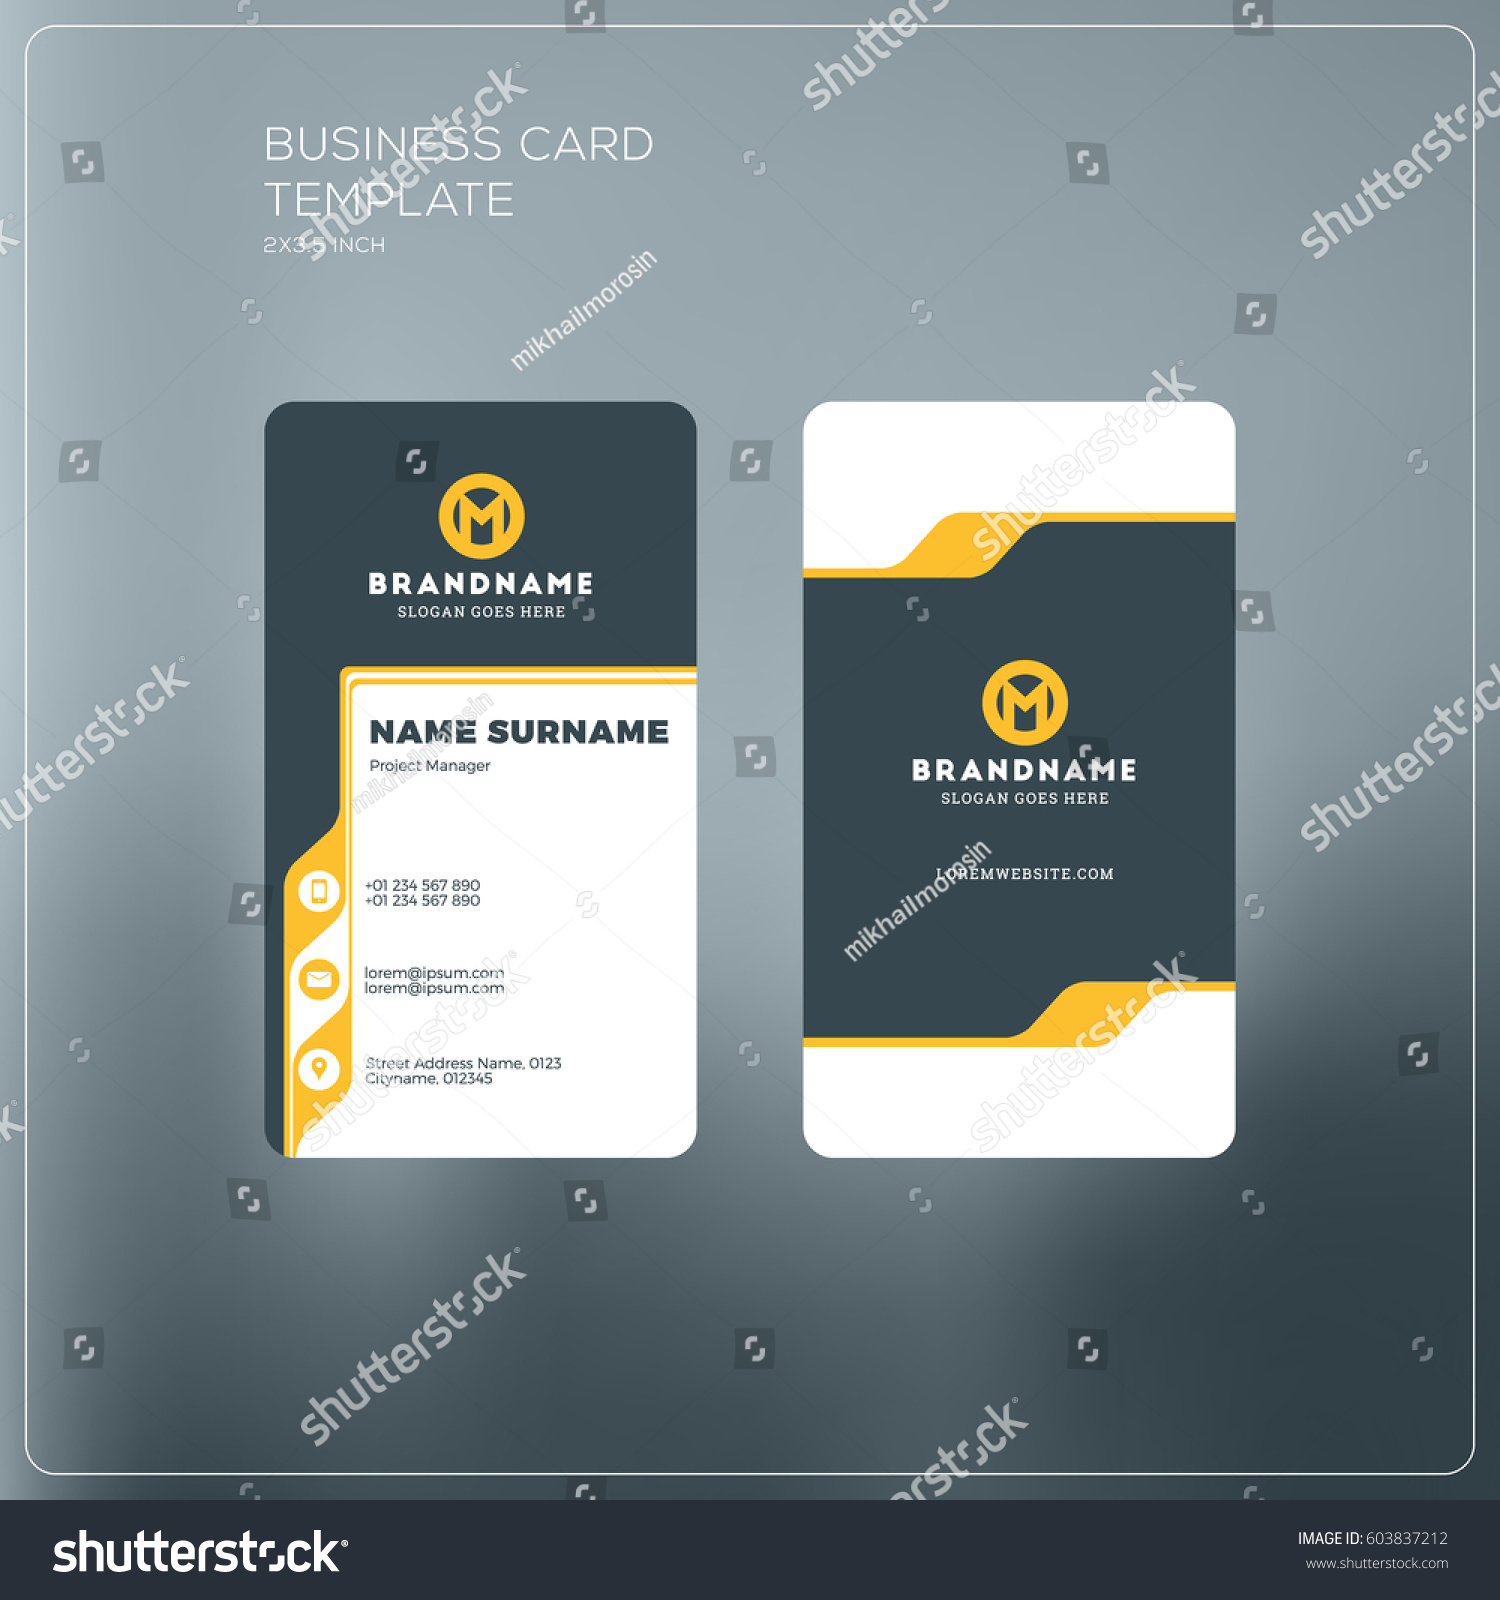 vertical business card print template personal business card with company logo black and yellow